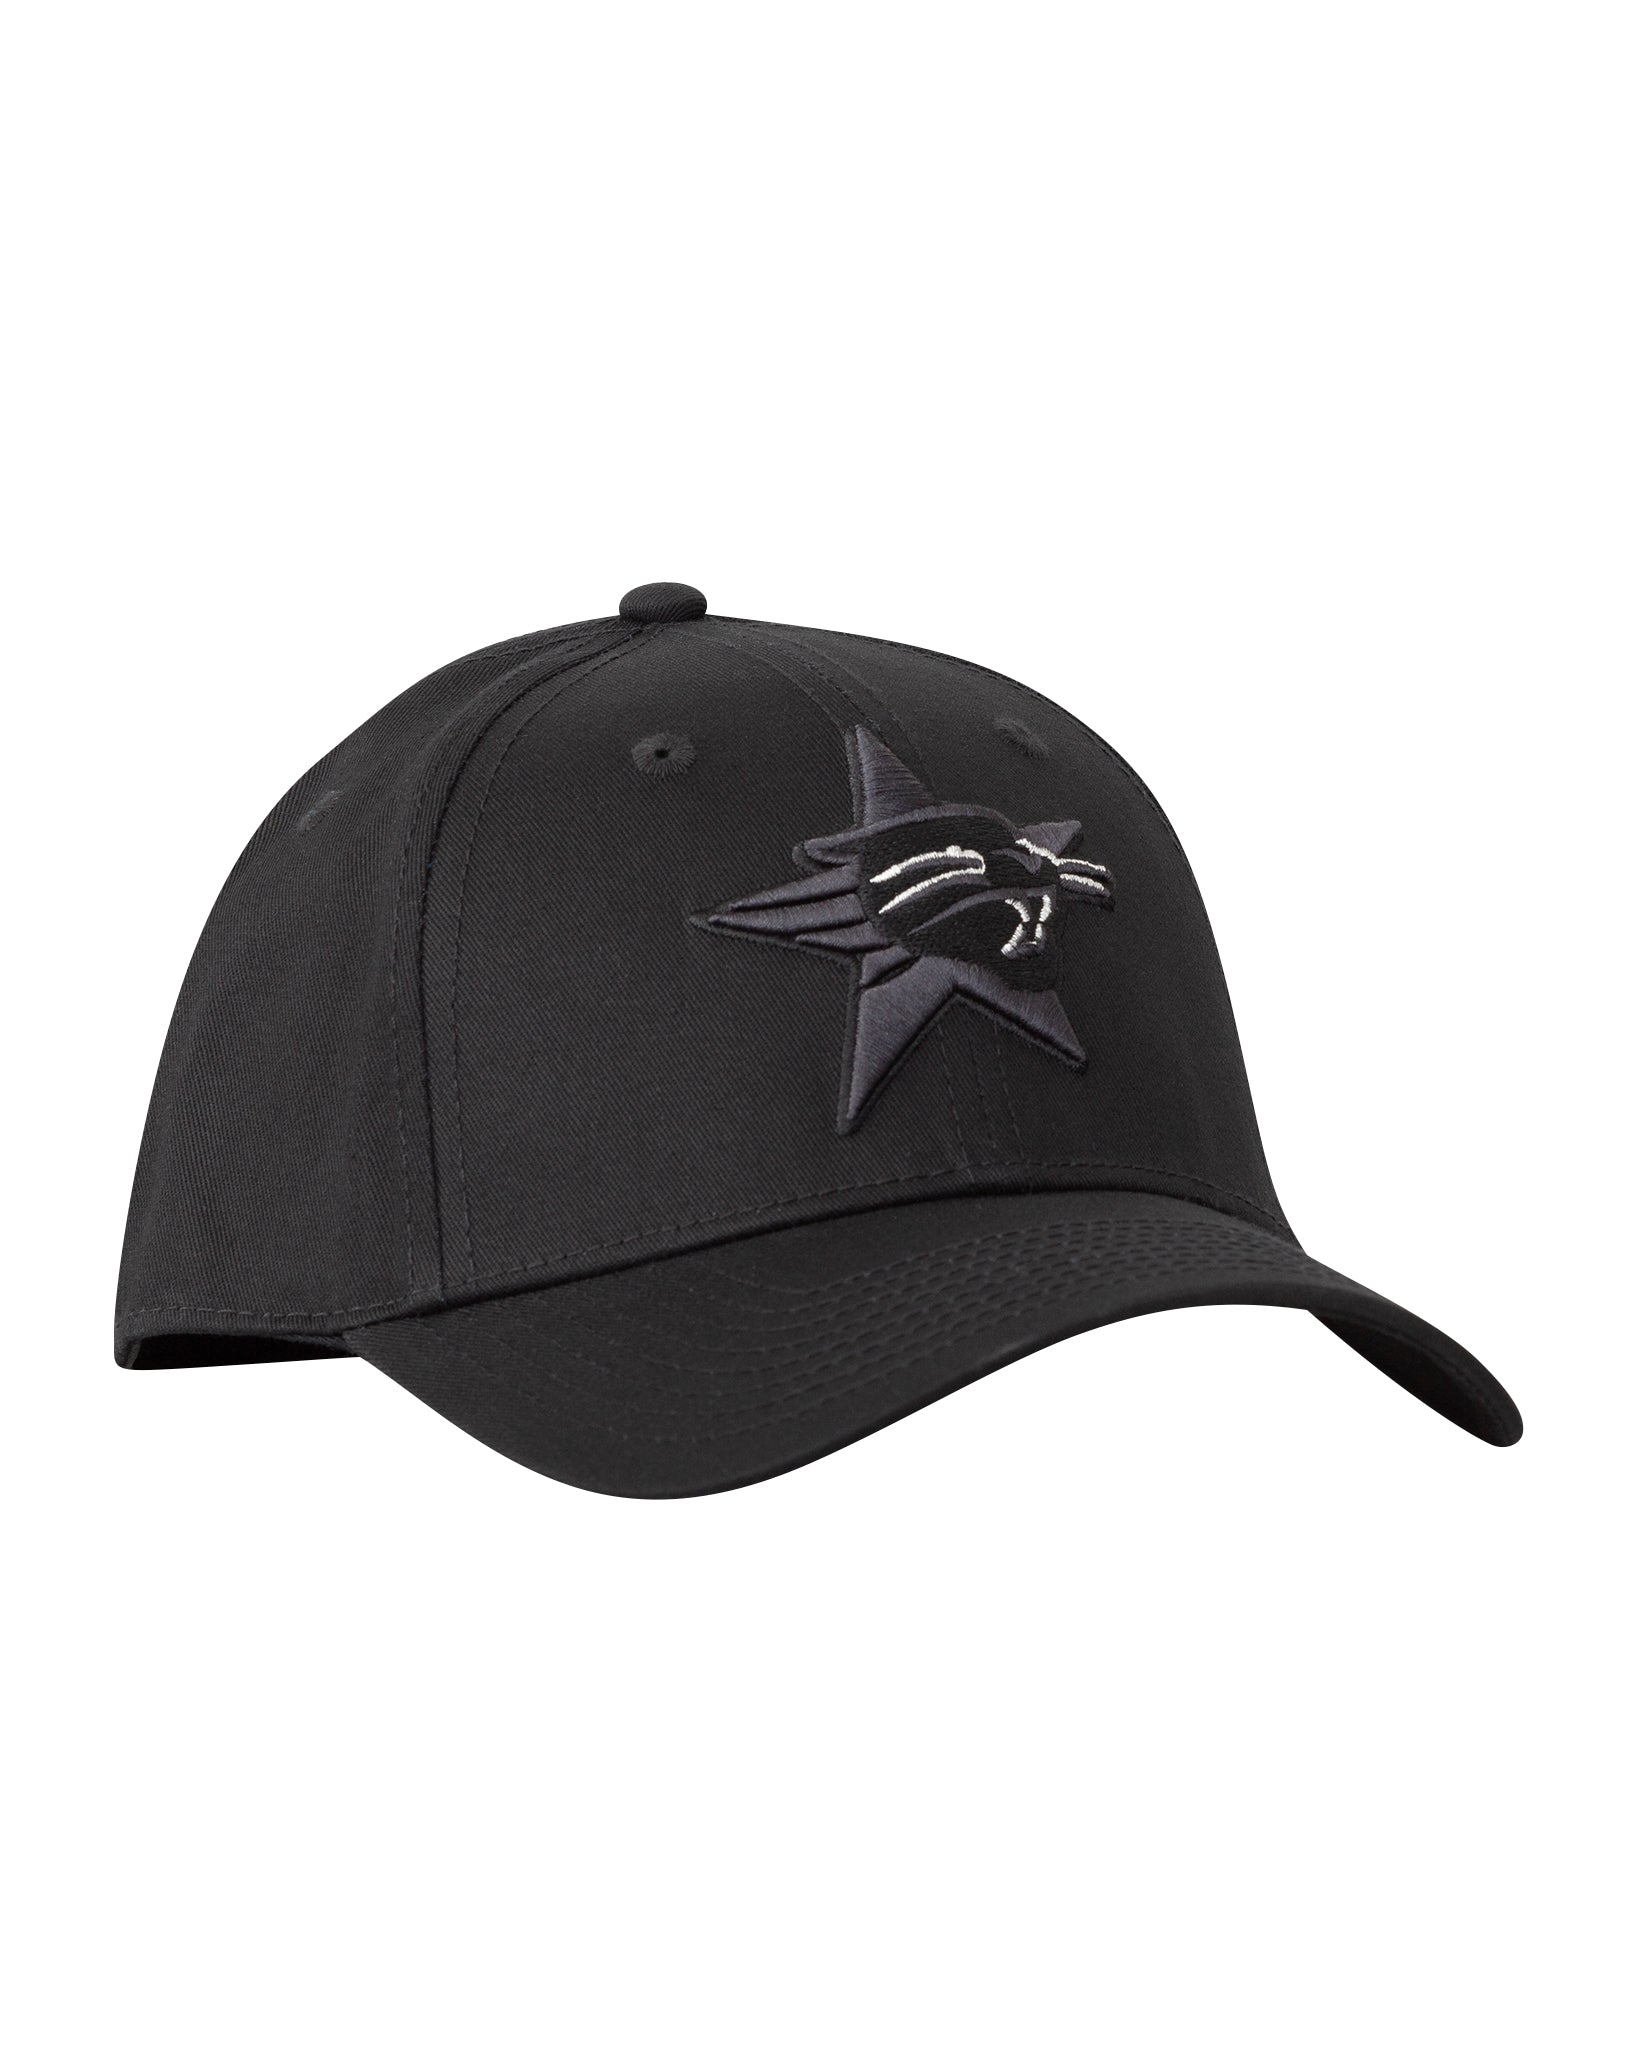 Perth Wildcats Black on Black Premium Curved Peak Cap